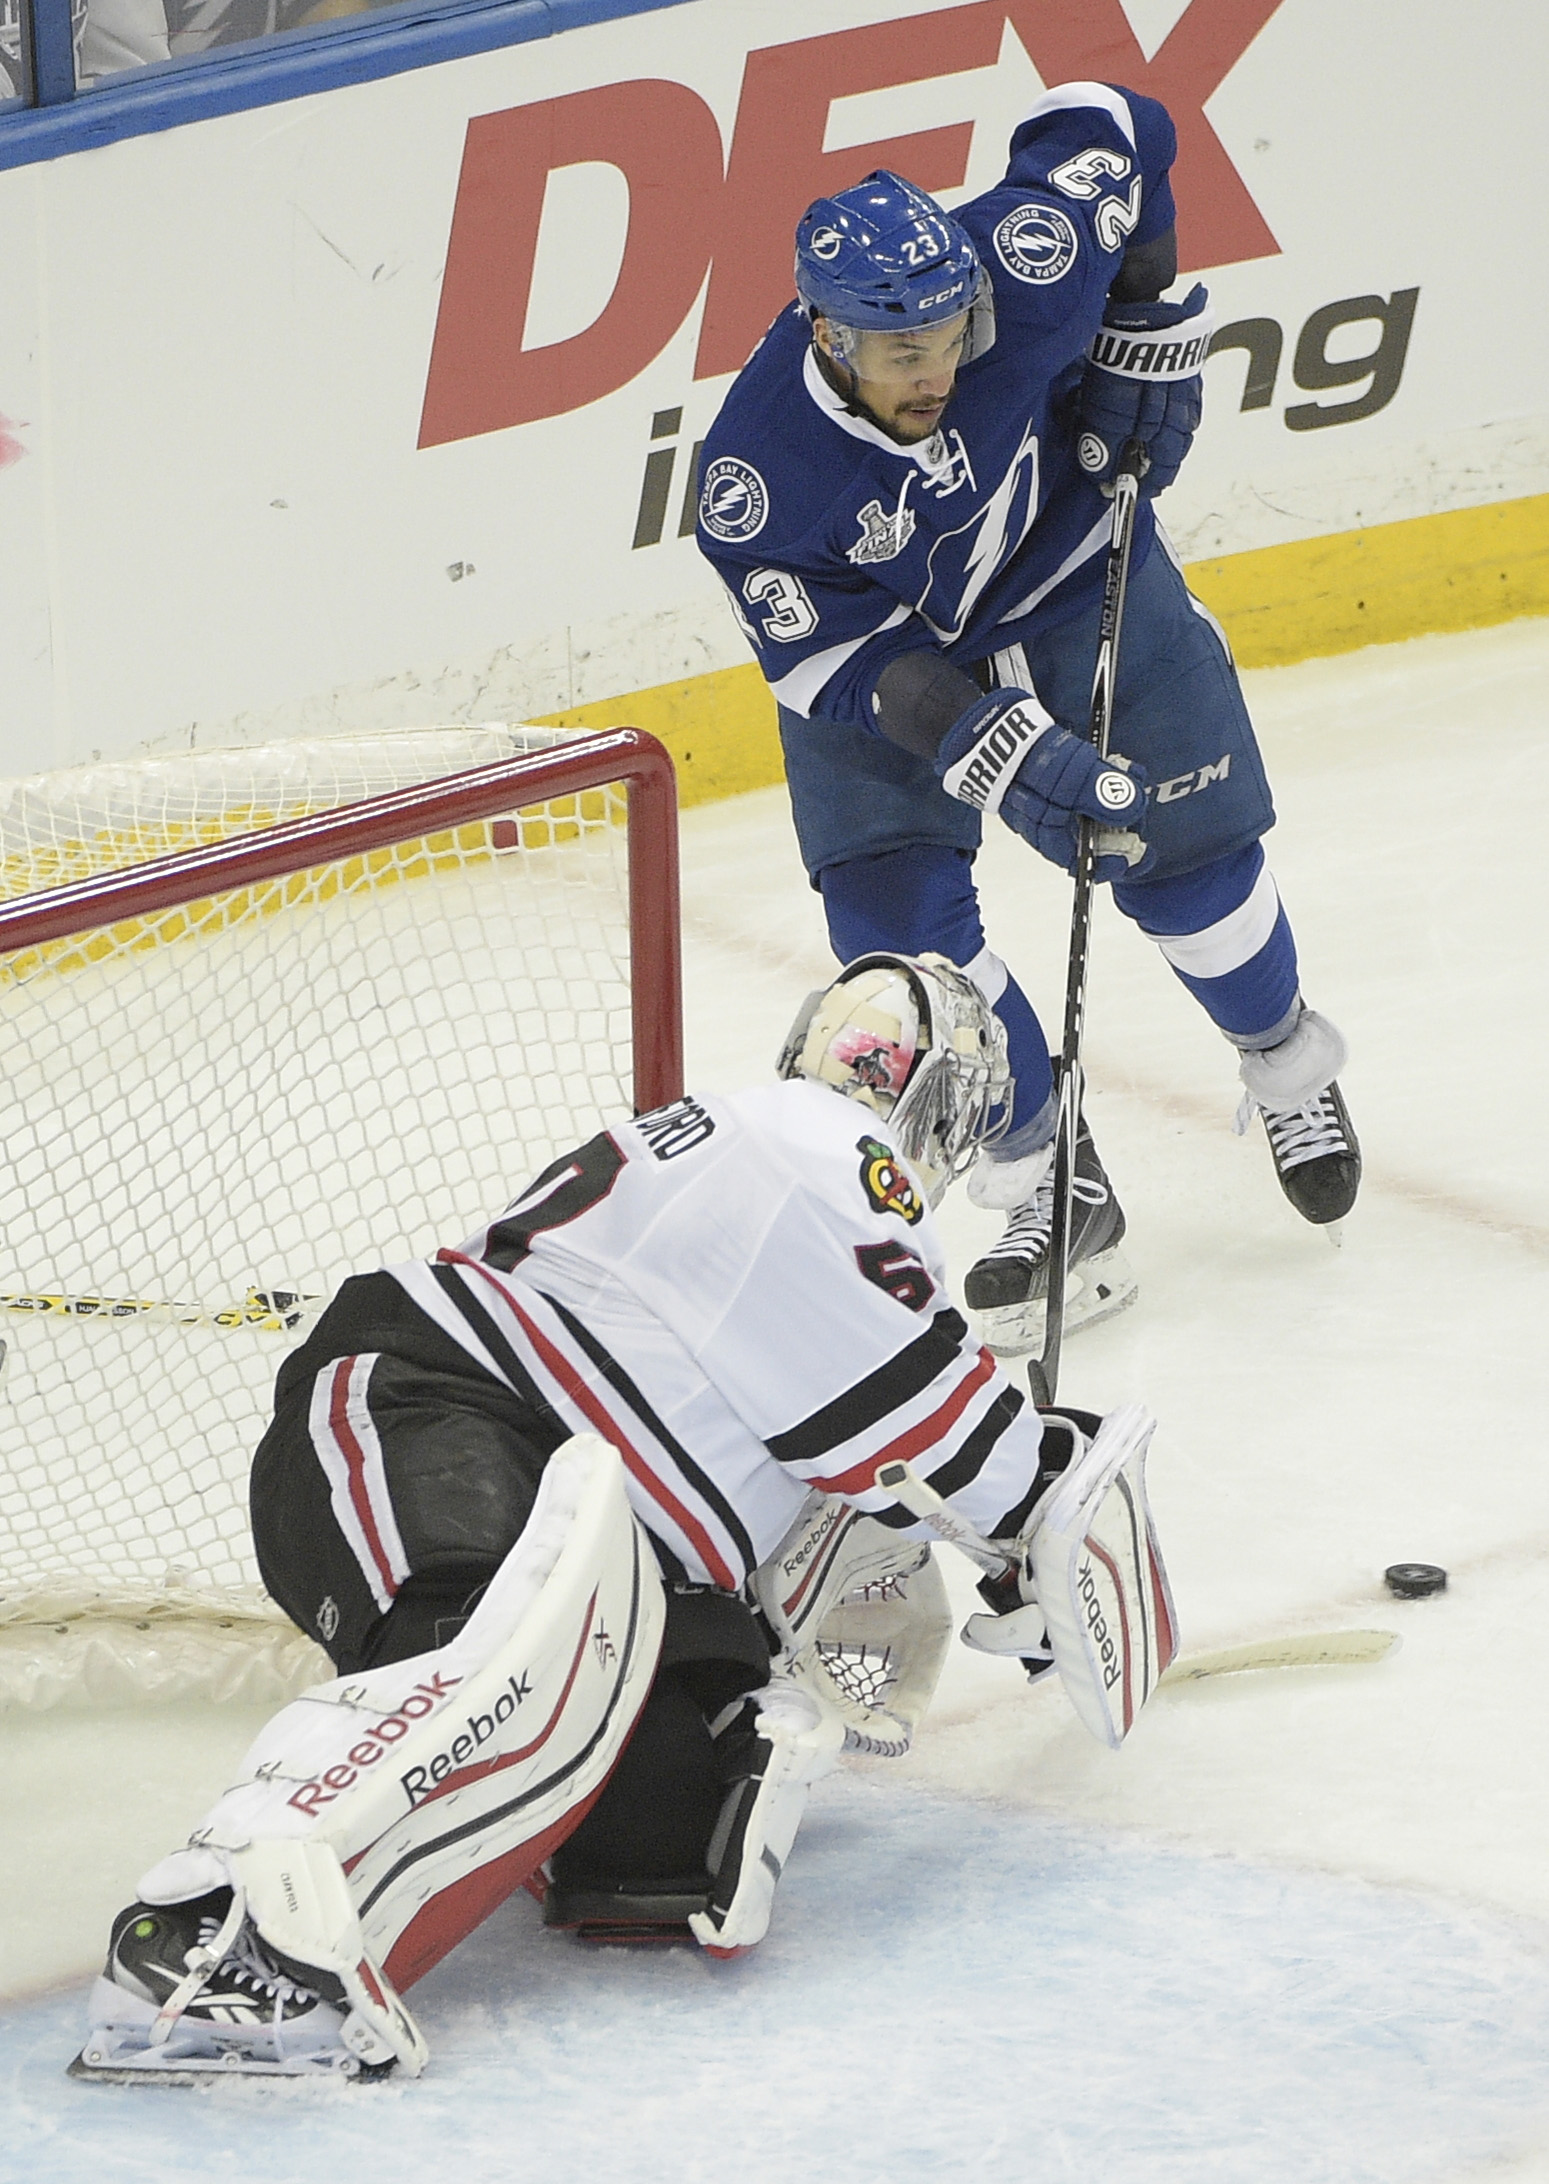 Chicago Blackhawks goalie Corey Crawford (50) , bottom, blocks a shot by Tampa Bay Lightning right wing J.T. Brown (23) during the first period in Game 1 of the NHL hockey Stanley Cup Final in Tampa, Fla., Wednesday, June 3, 2015.  (AP Photo/Phelan M. Ebe